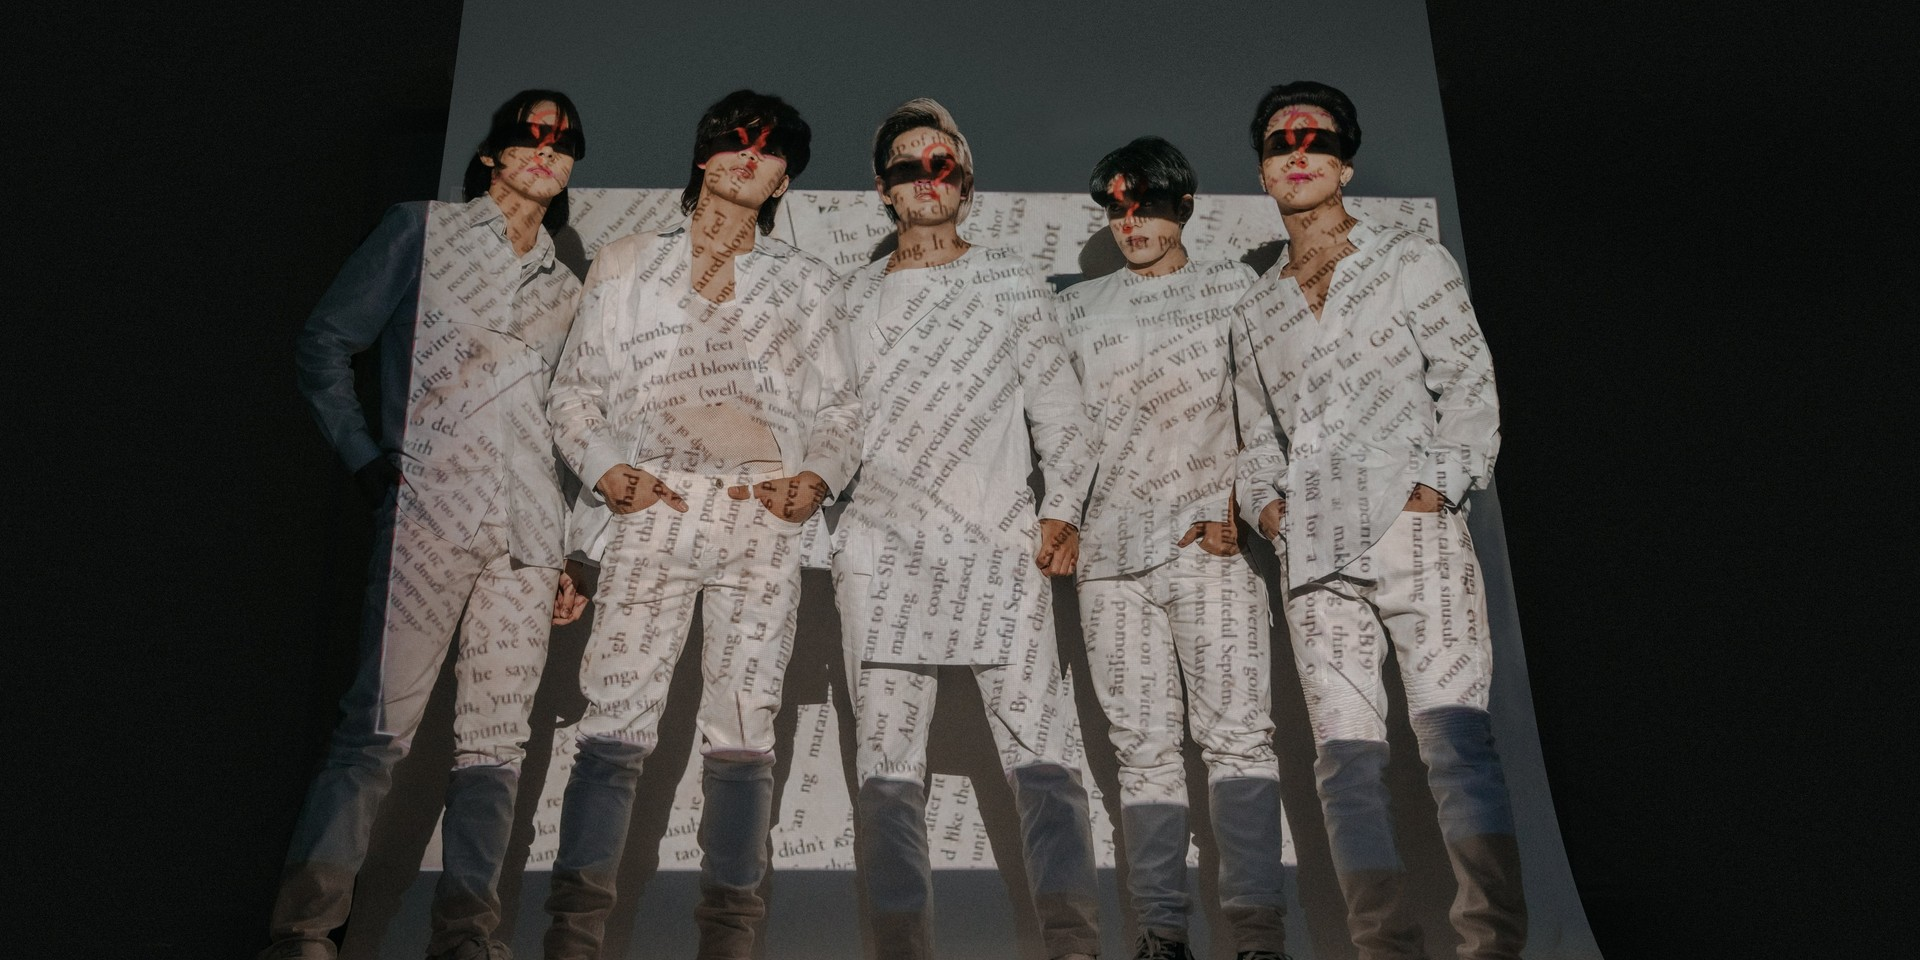 SB19 talk about their early days, being proudly Filipino, and jamming to ABBA, Bruno Mars, Slipknot, and more in Rolling Stone interview